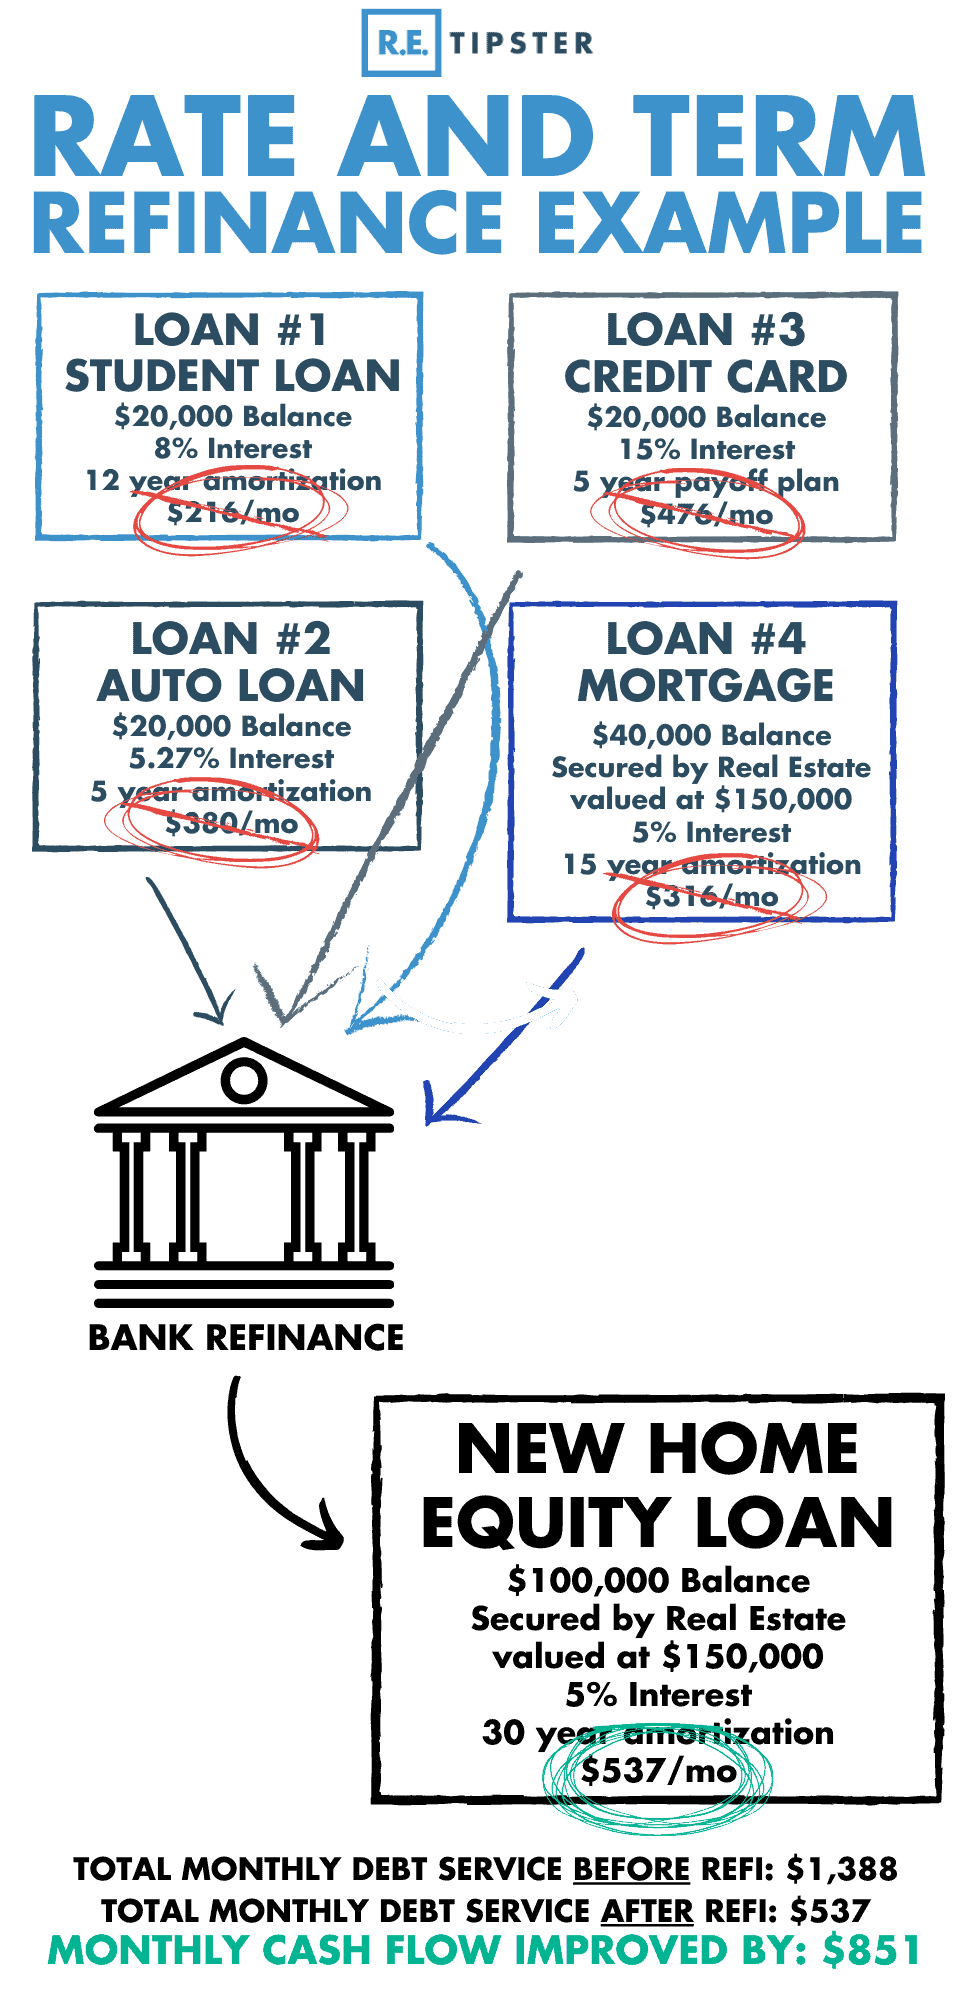 rate and term refinance example